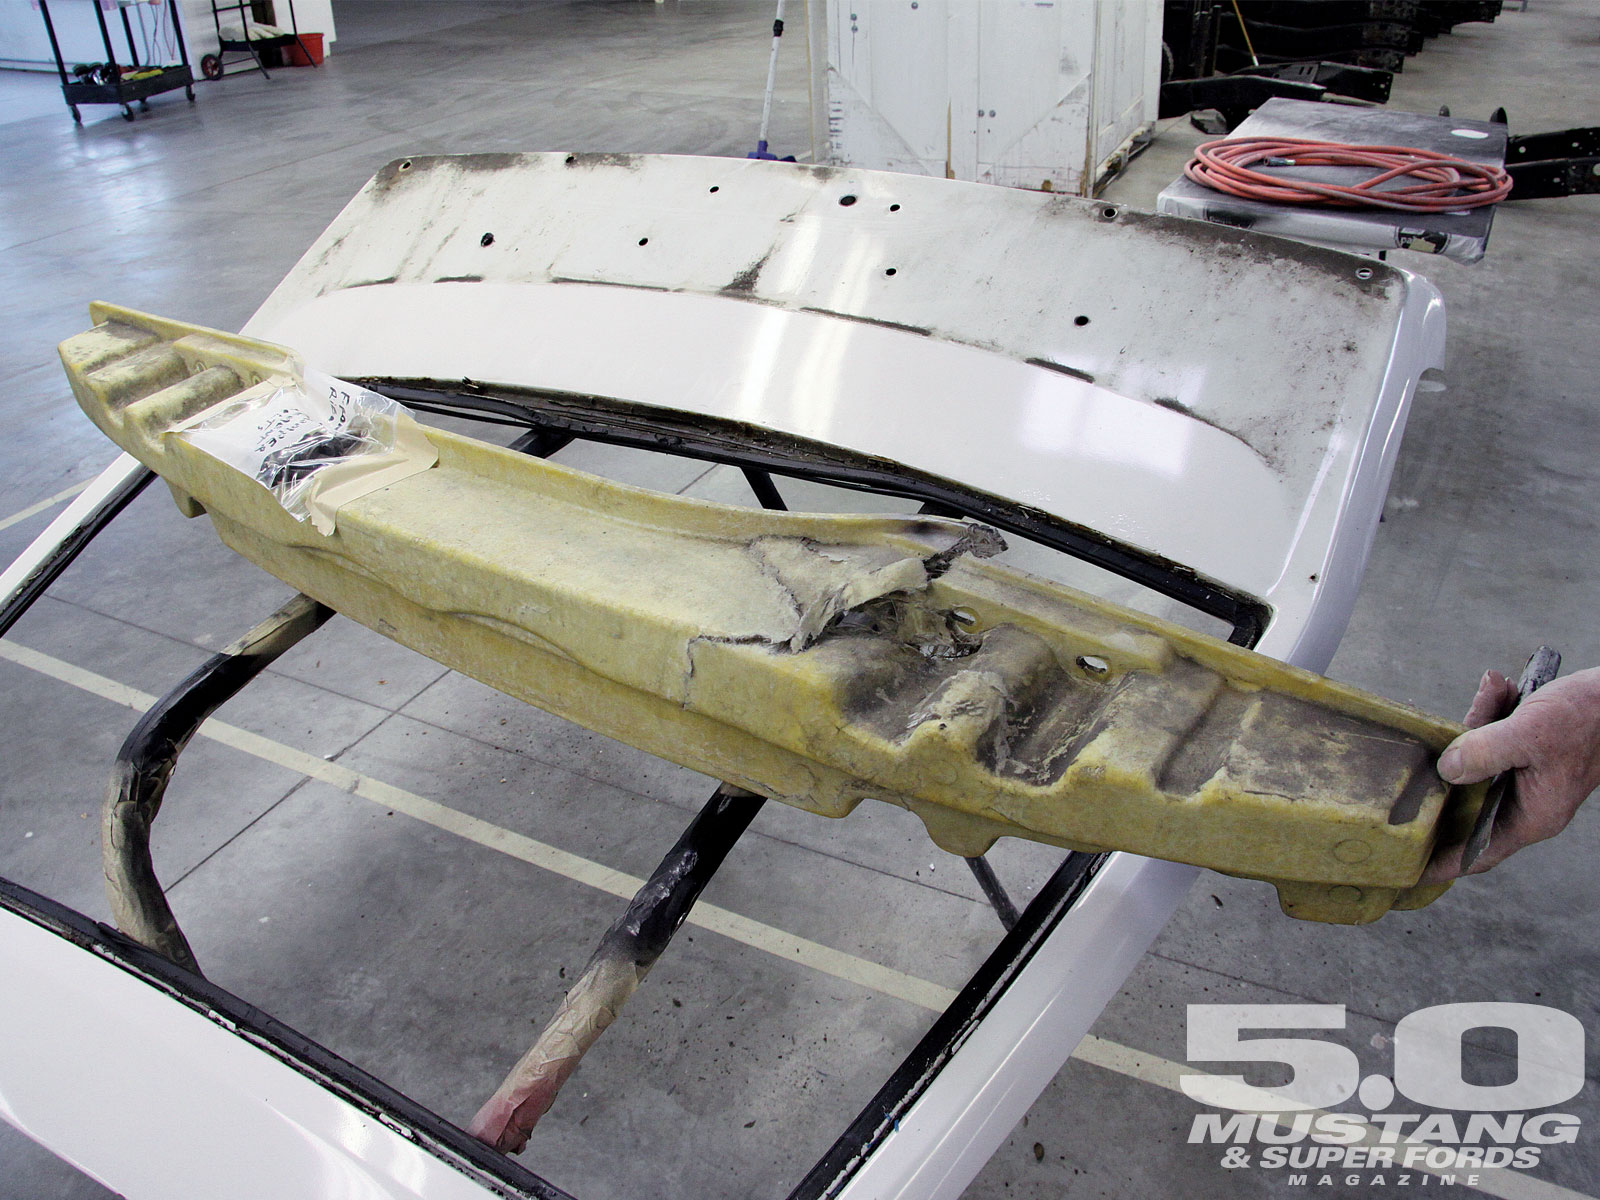 M5lp_1008_06_o 1988_ford_mustang_lx Collision_damage_fascia_support